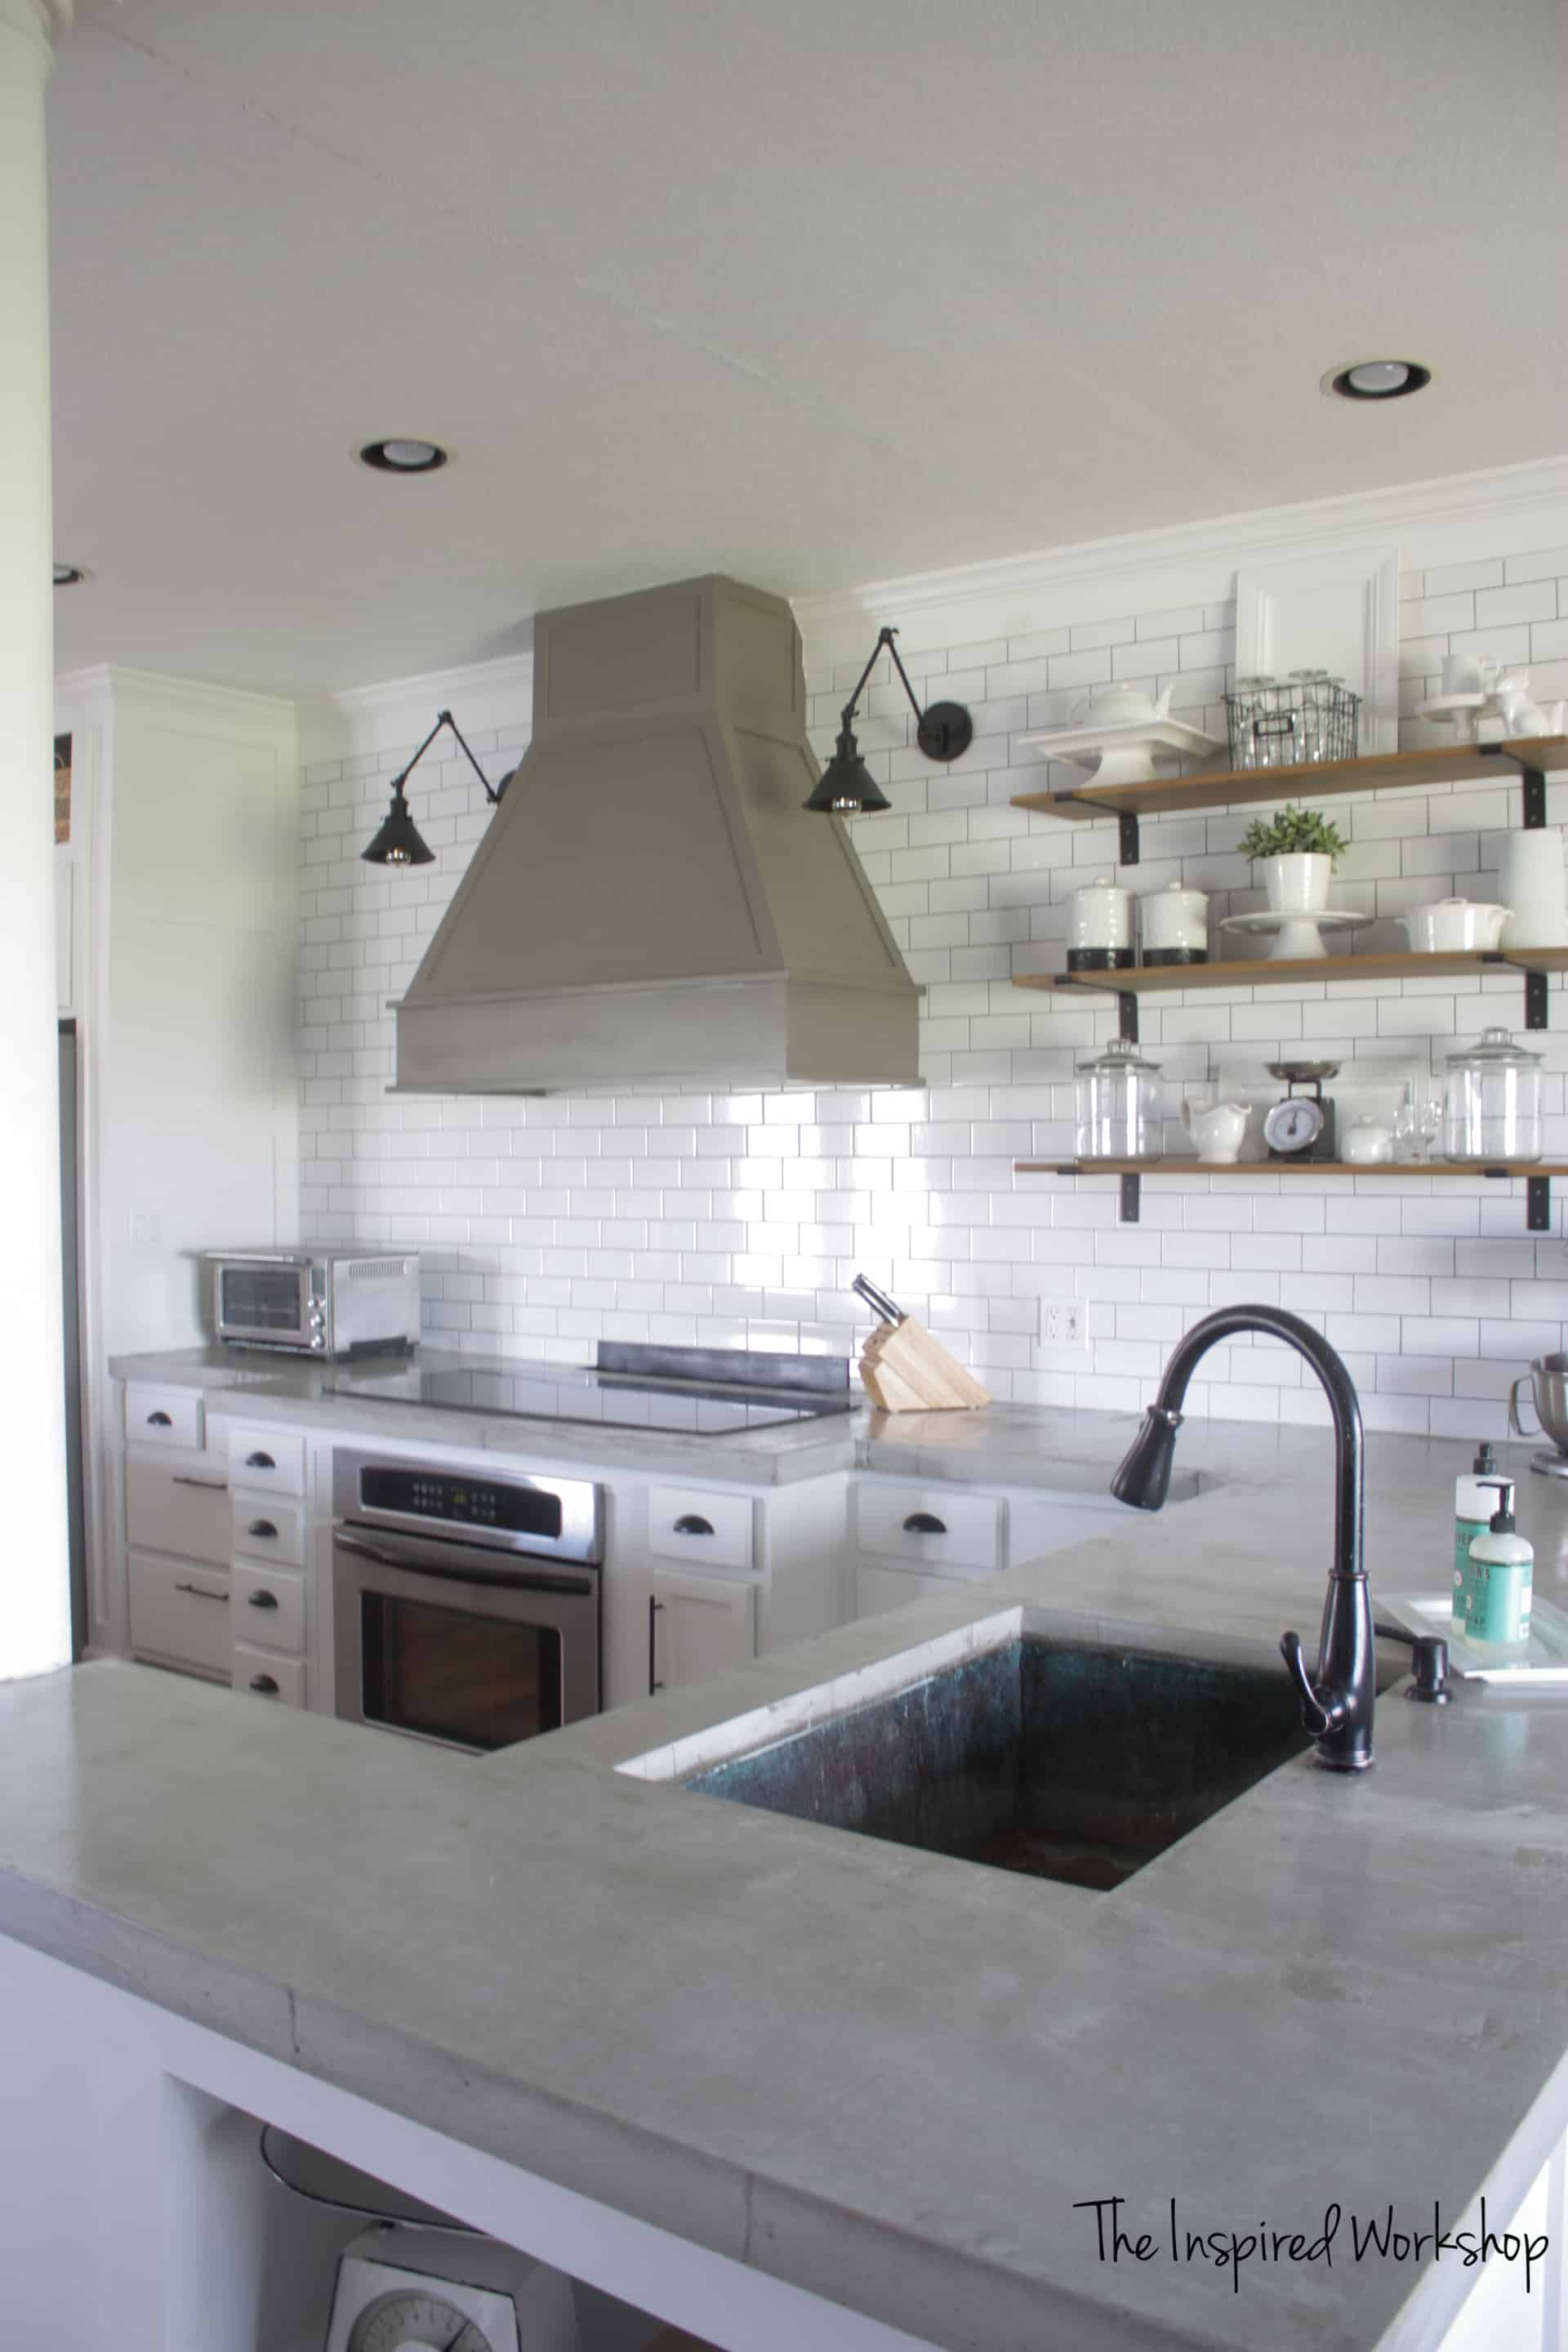 Kitchen with white subway tile and concrete countertops